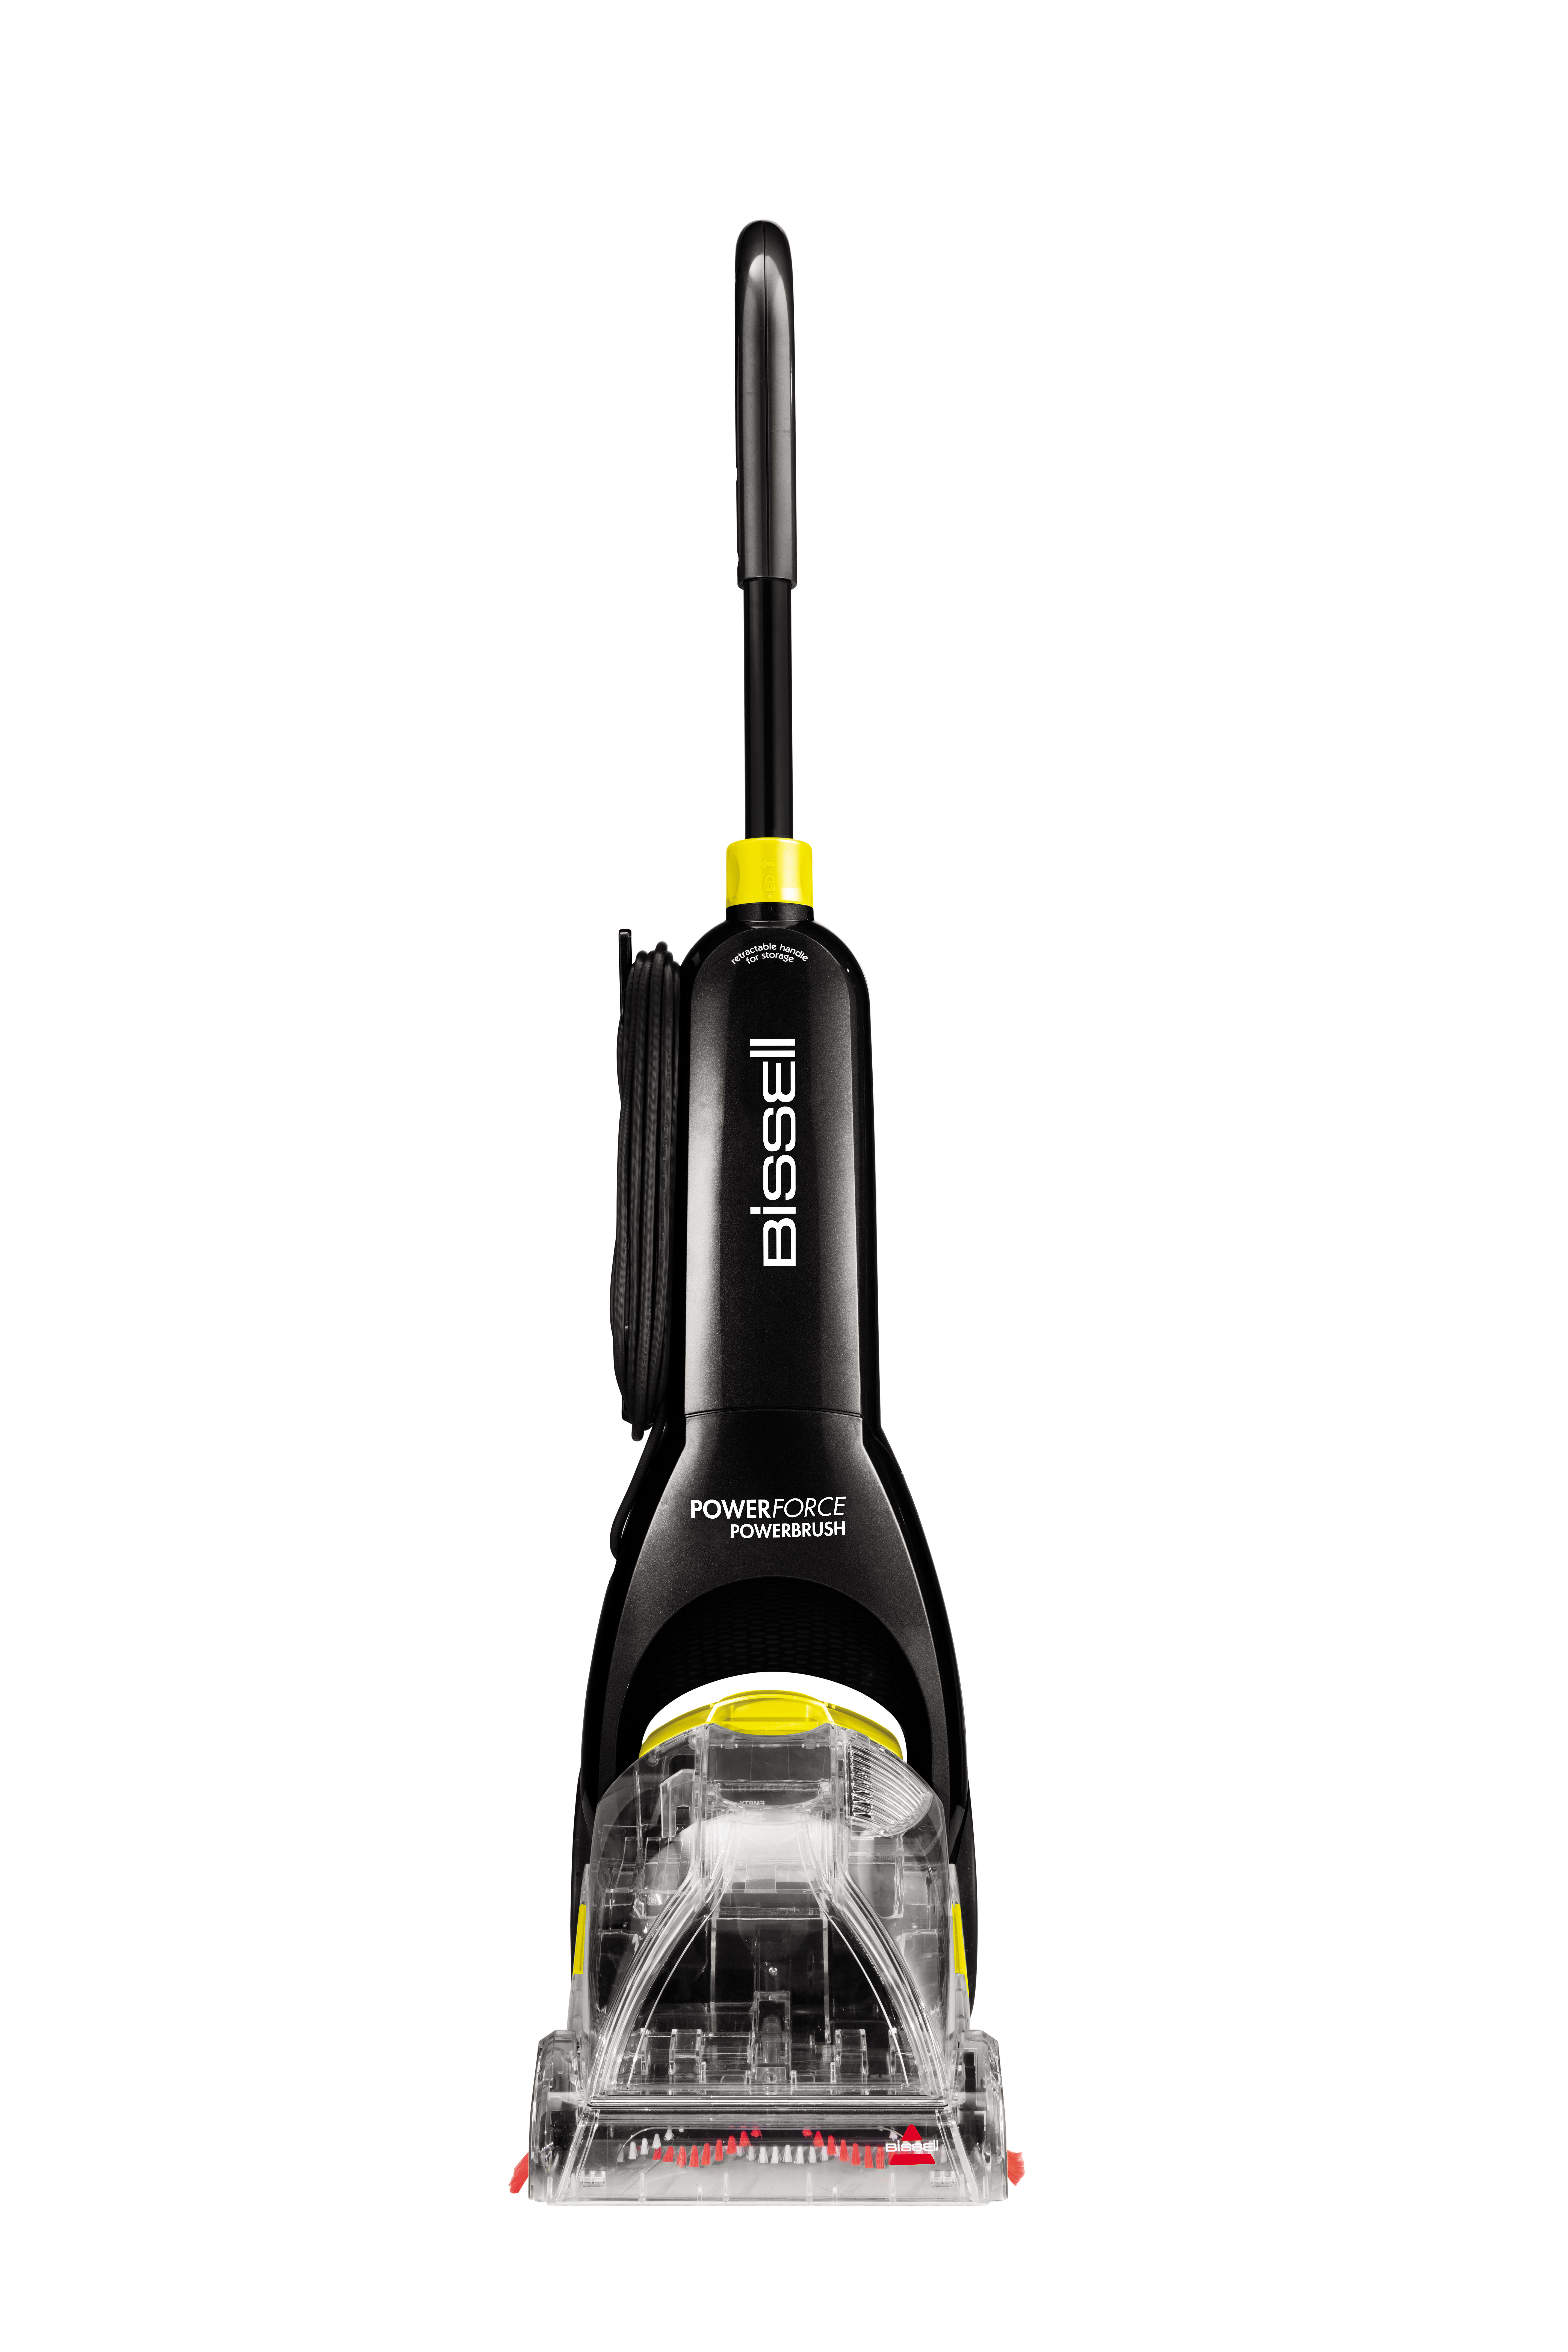 BISSELL PowerForce PowerBrush Full Size Carpet Cleaner, 2089 (new and Improved version...